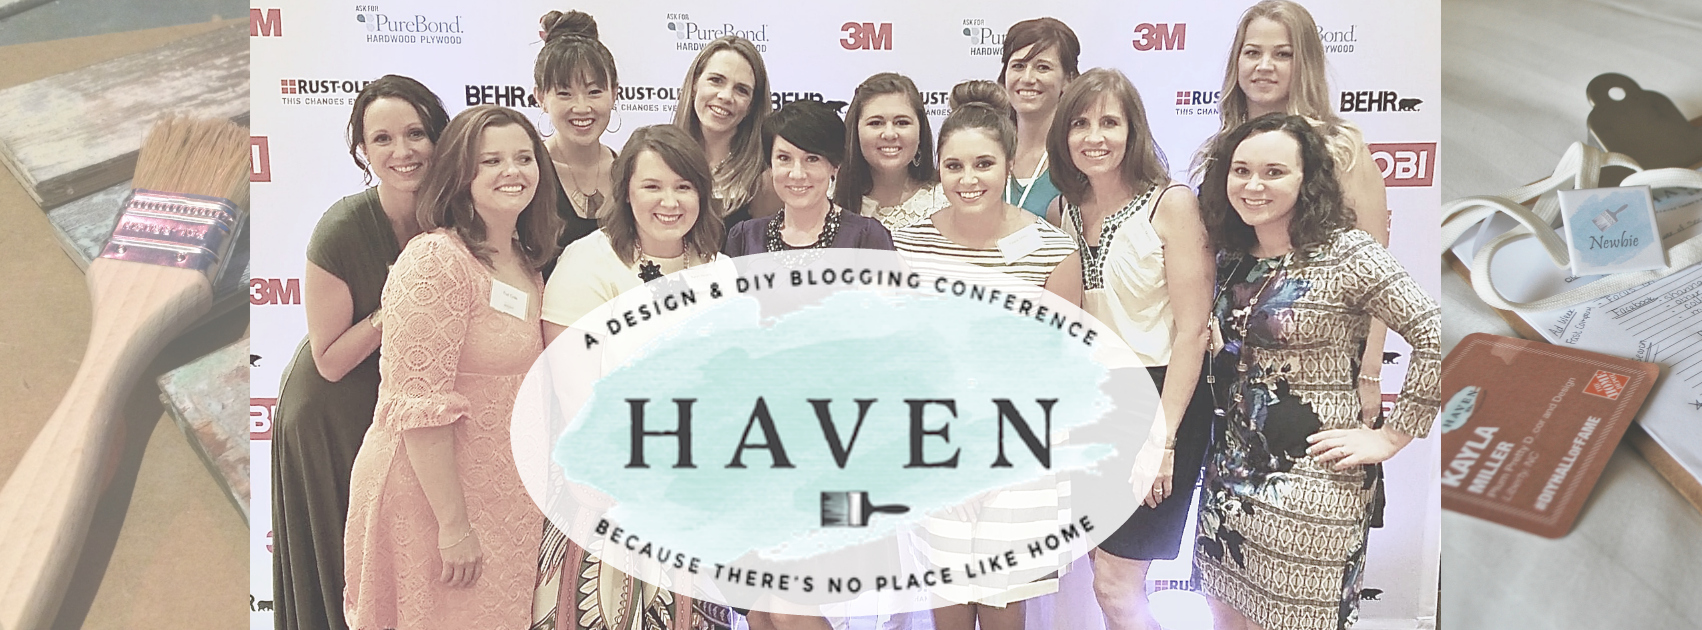 Haven Conference 2016